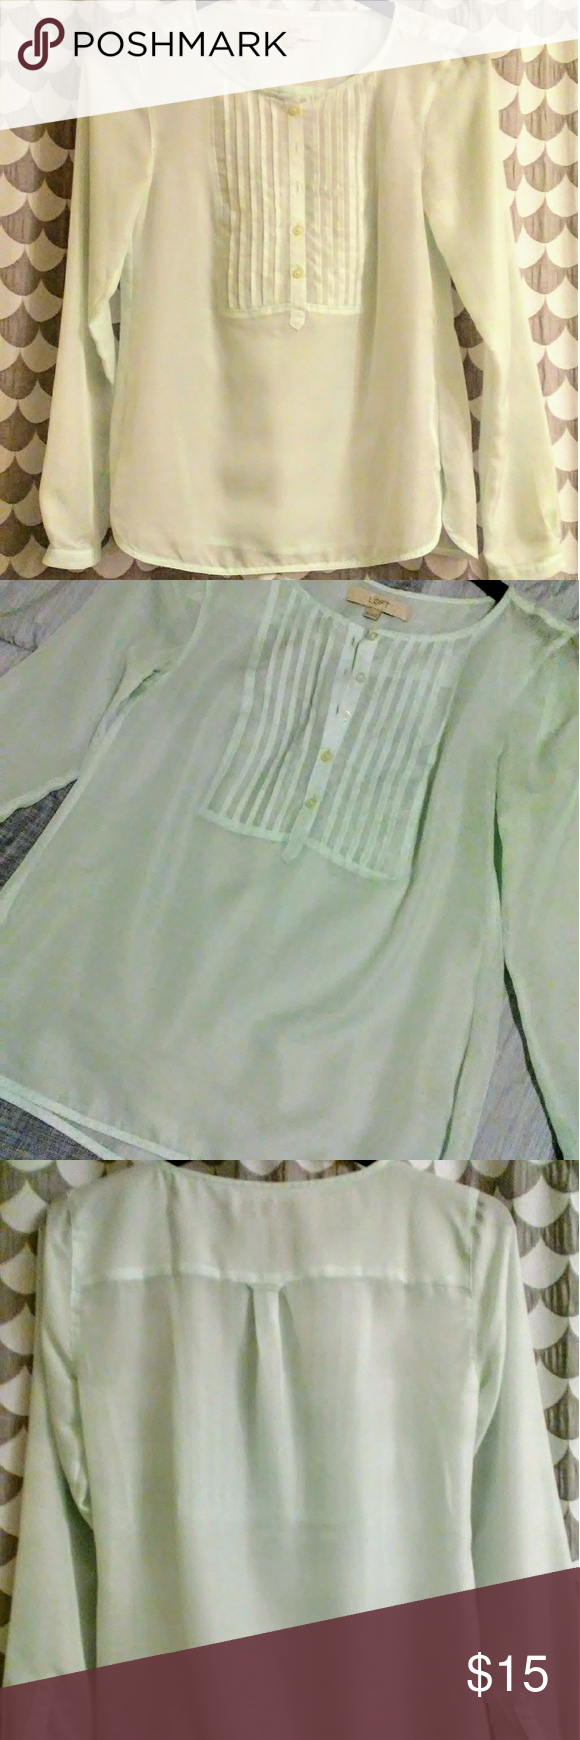 892ac191cc97b4 Ann Taylor LOFT Woman s top Mint green beautiful light weight see through  blouse! Pre owned but in good and clean condition! Five button front design.